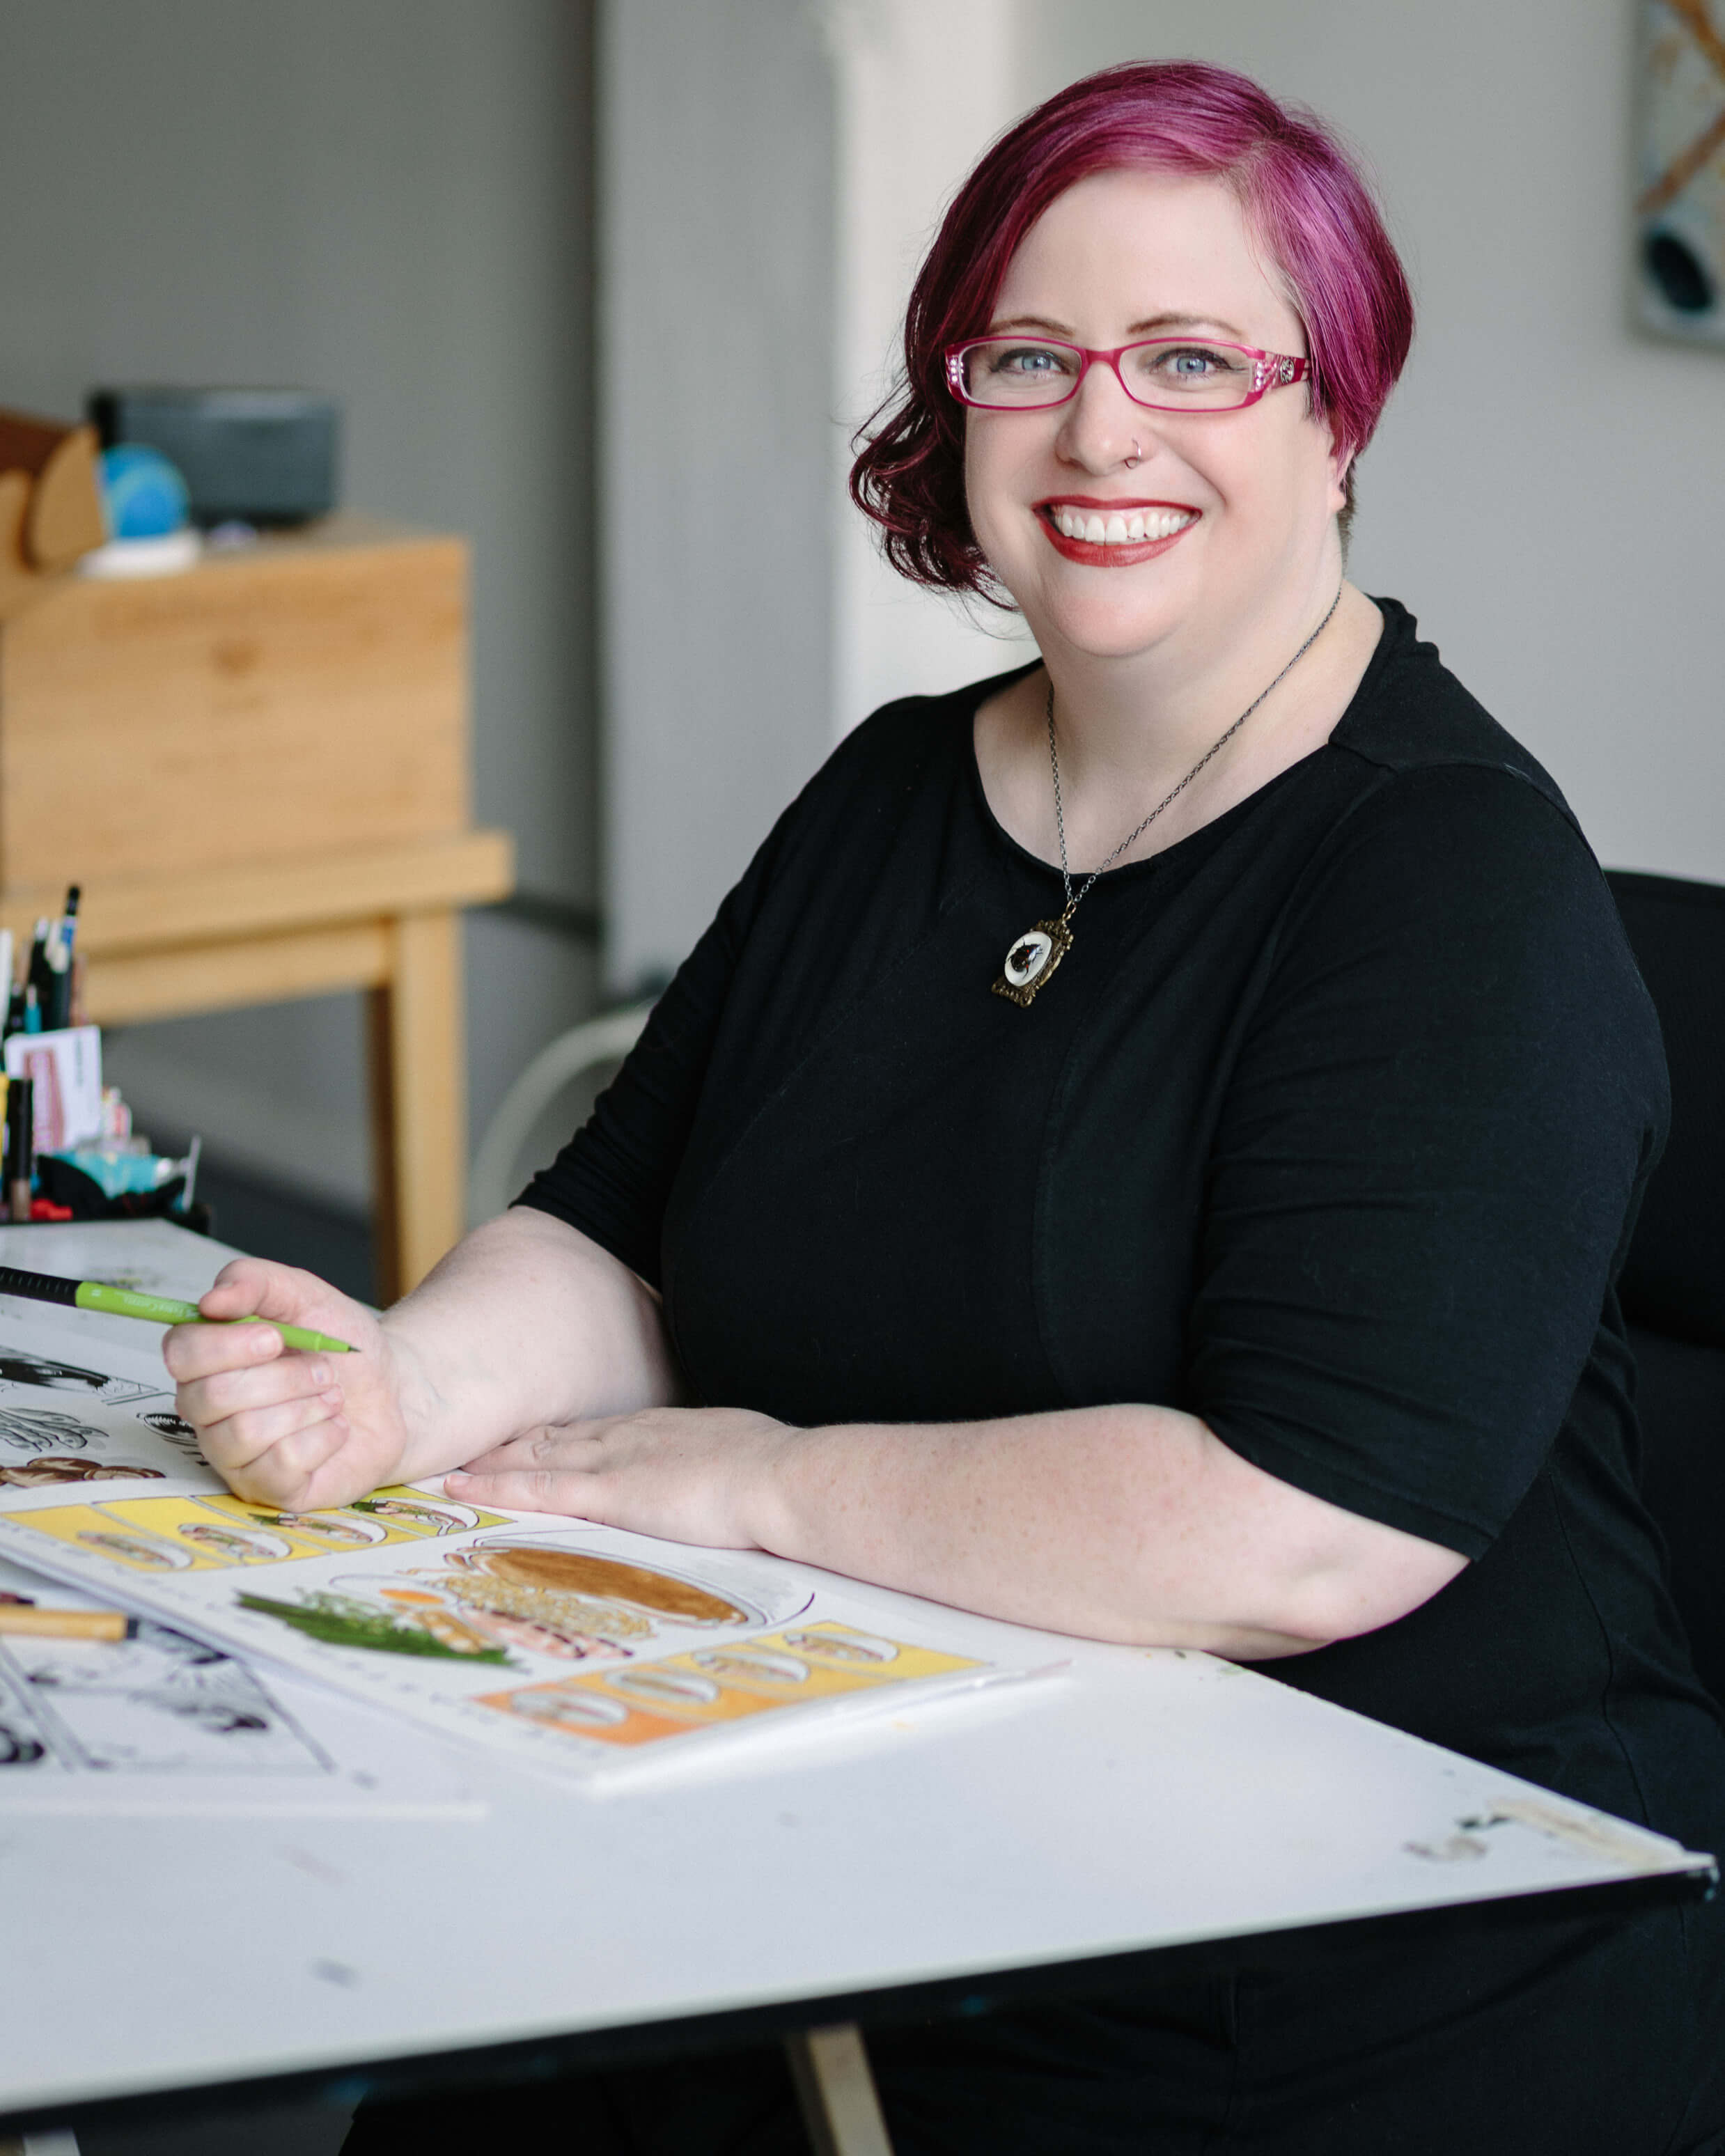 female illustrator smiling at desk